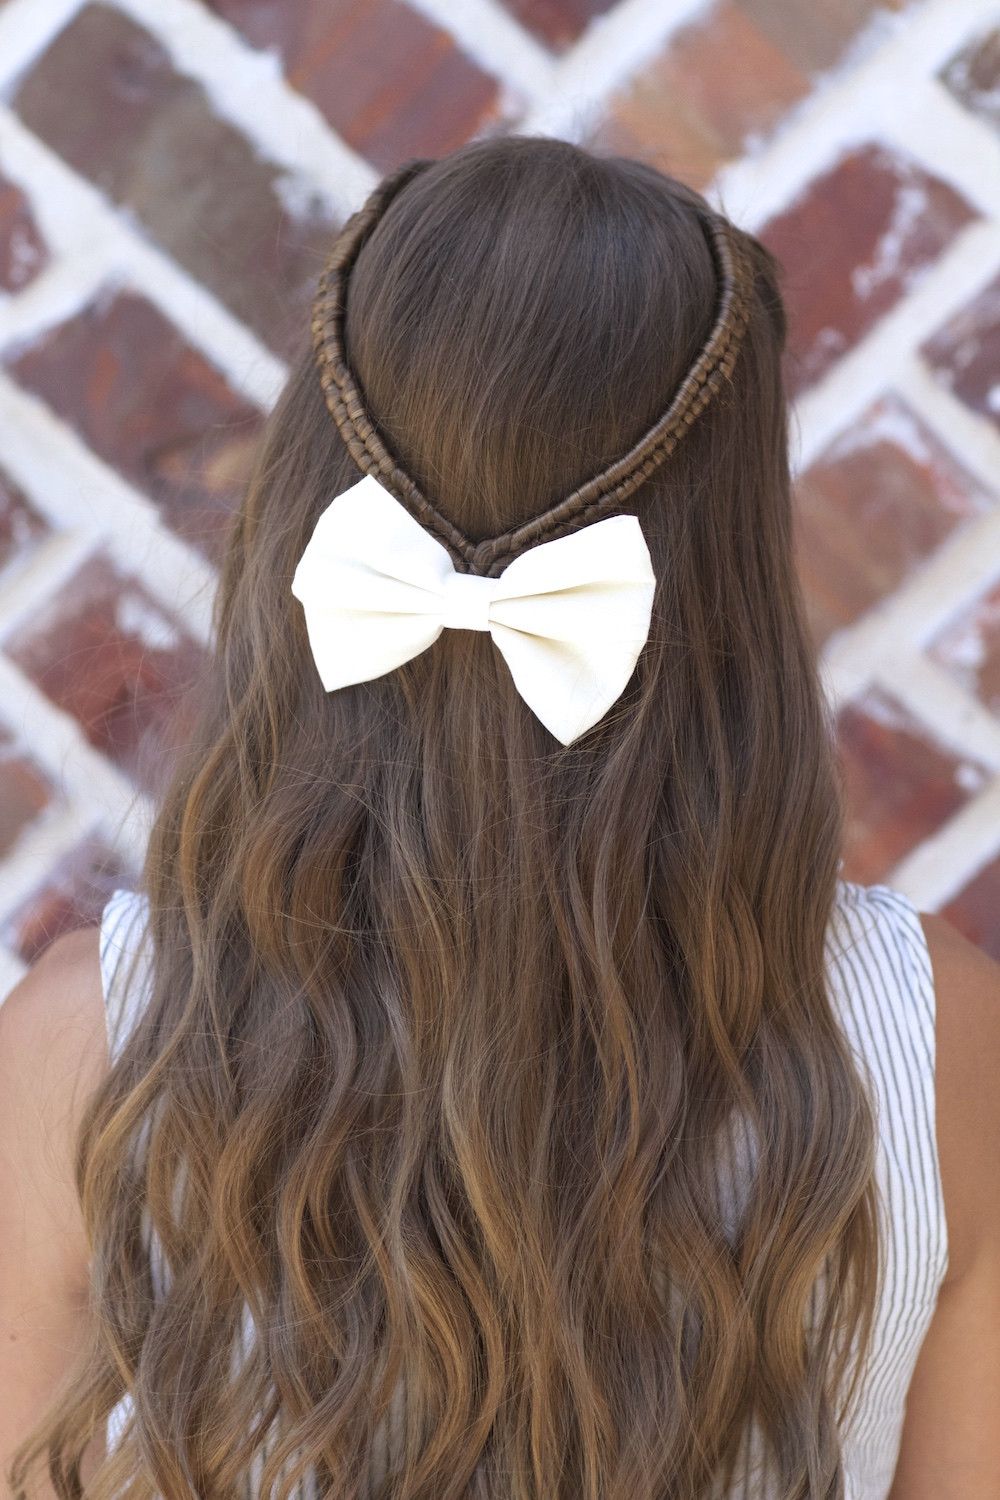 Best ideas about Cute Hairstyles . Save or Pin Infinity Braid Tieback Back to School Hairstyles Now.